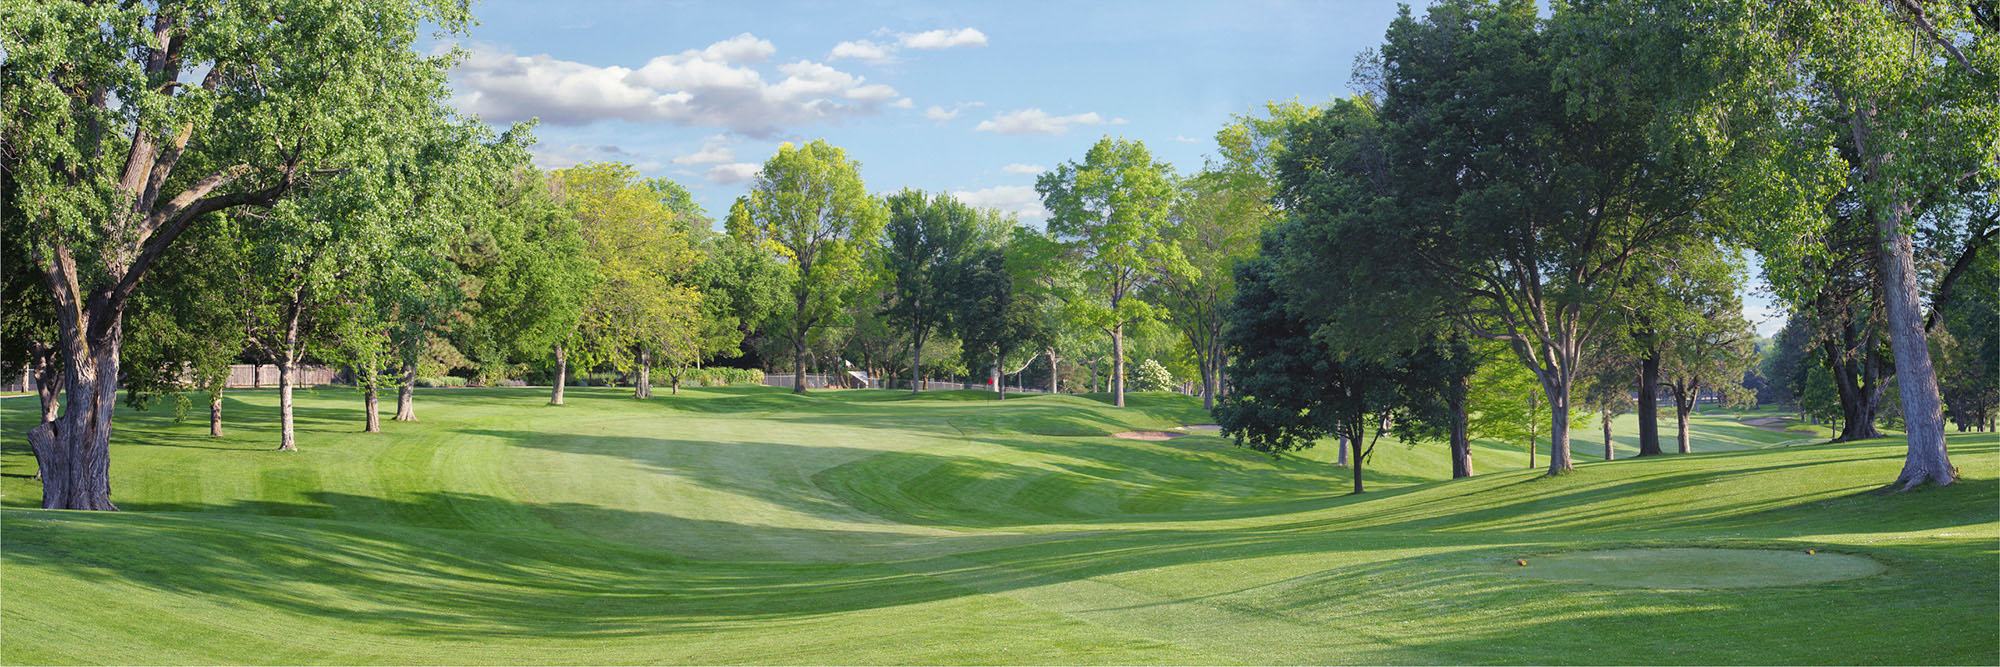 Golf Course Image - Country Club of Lincoln No. 12